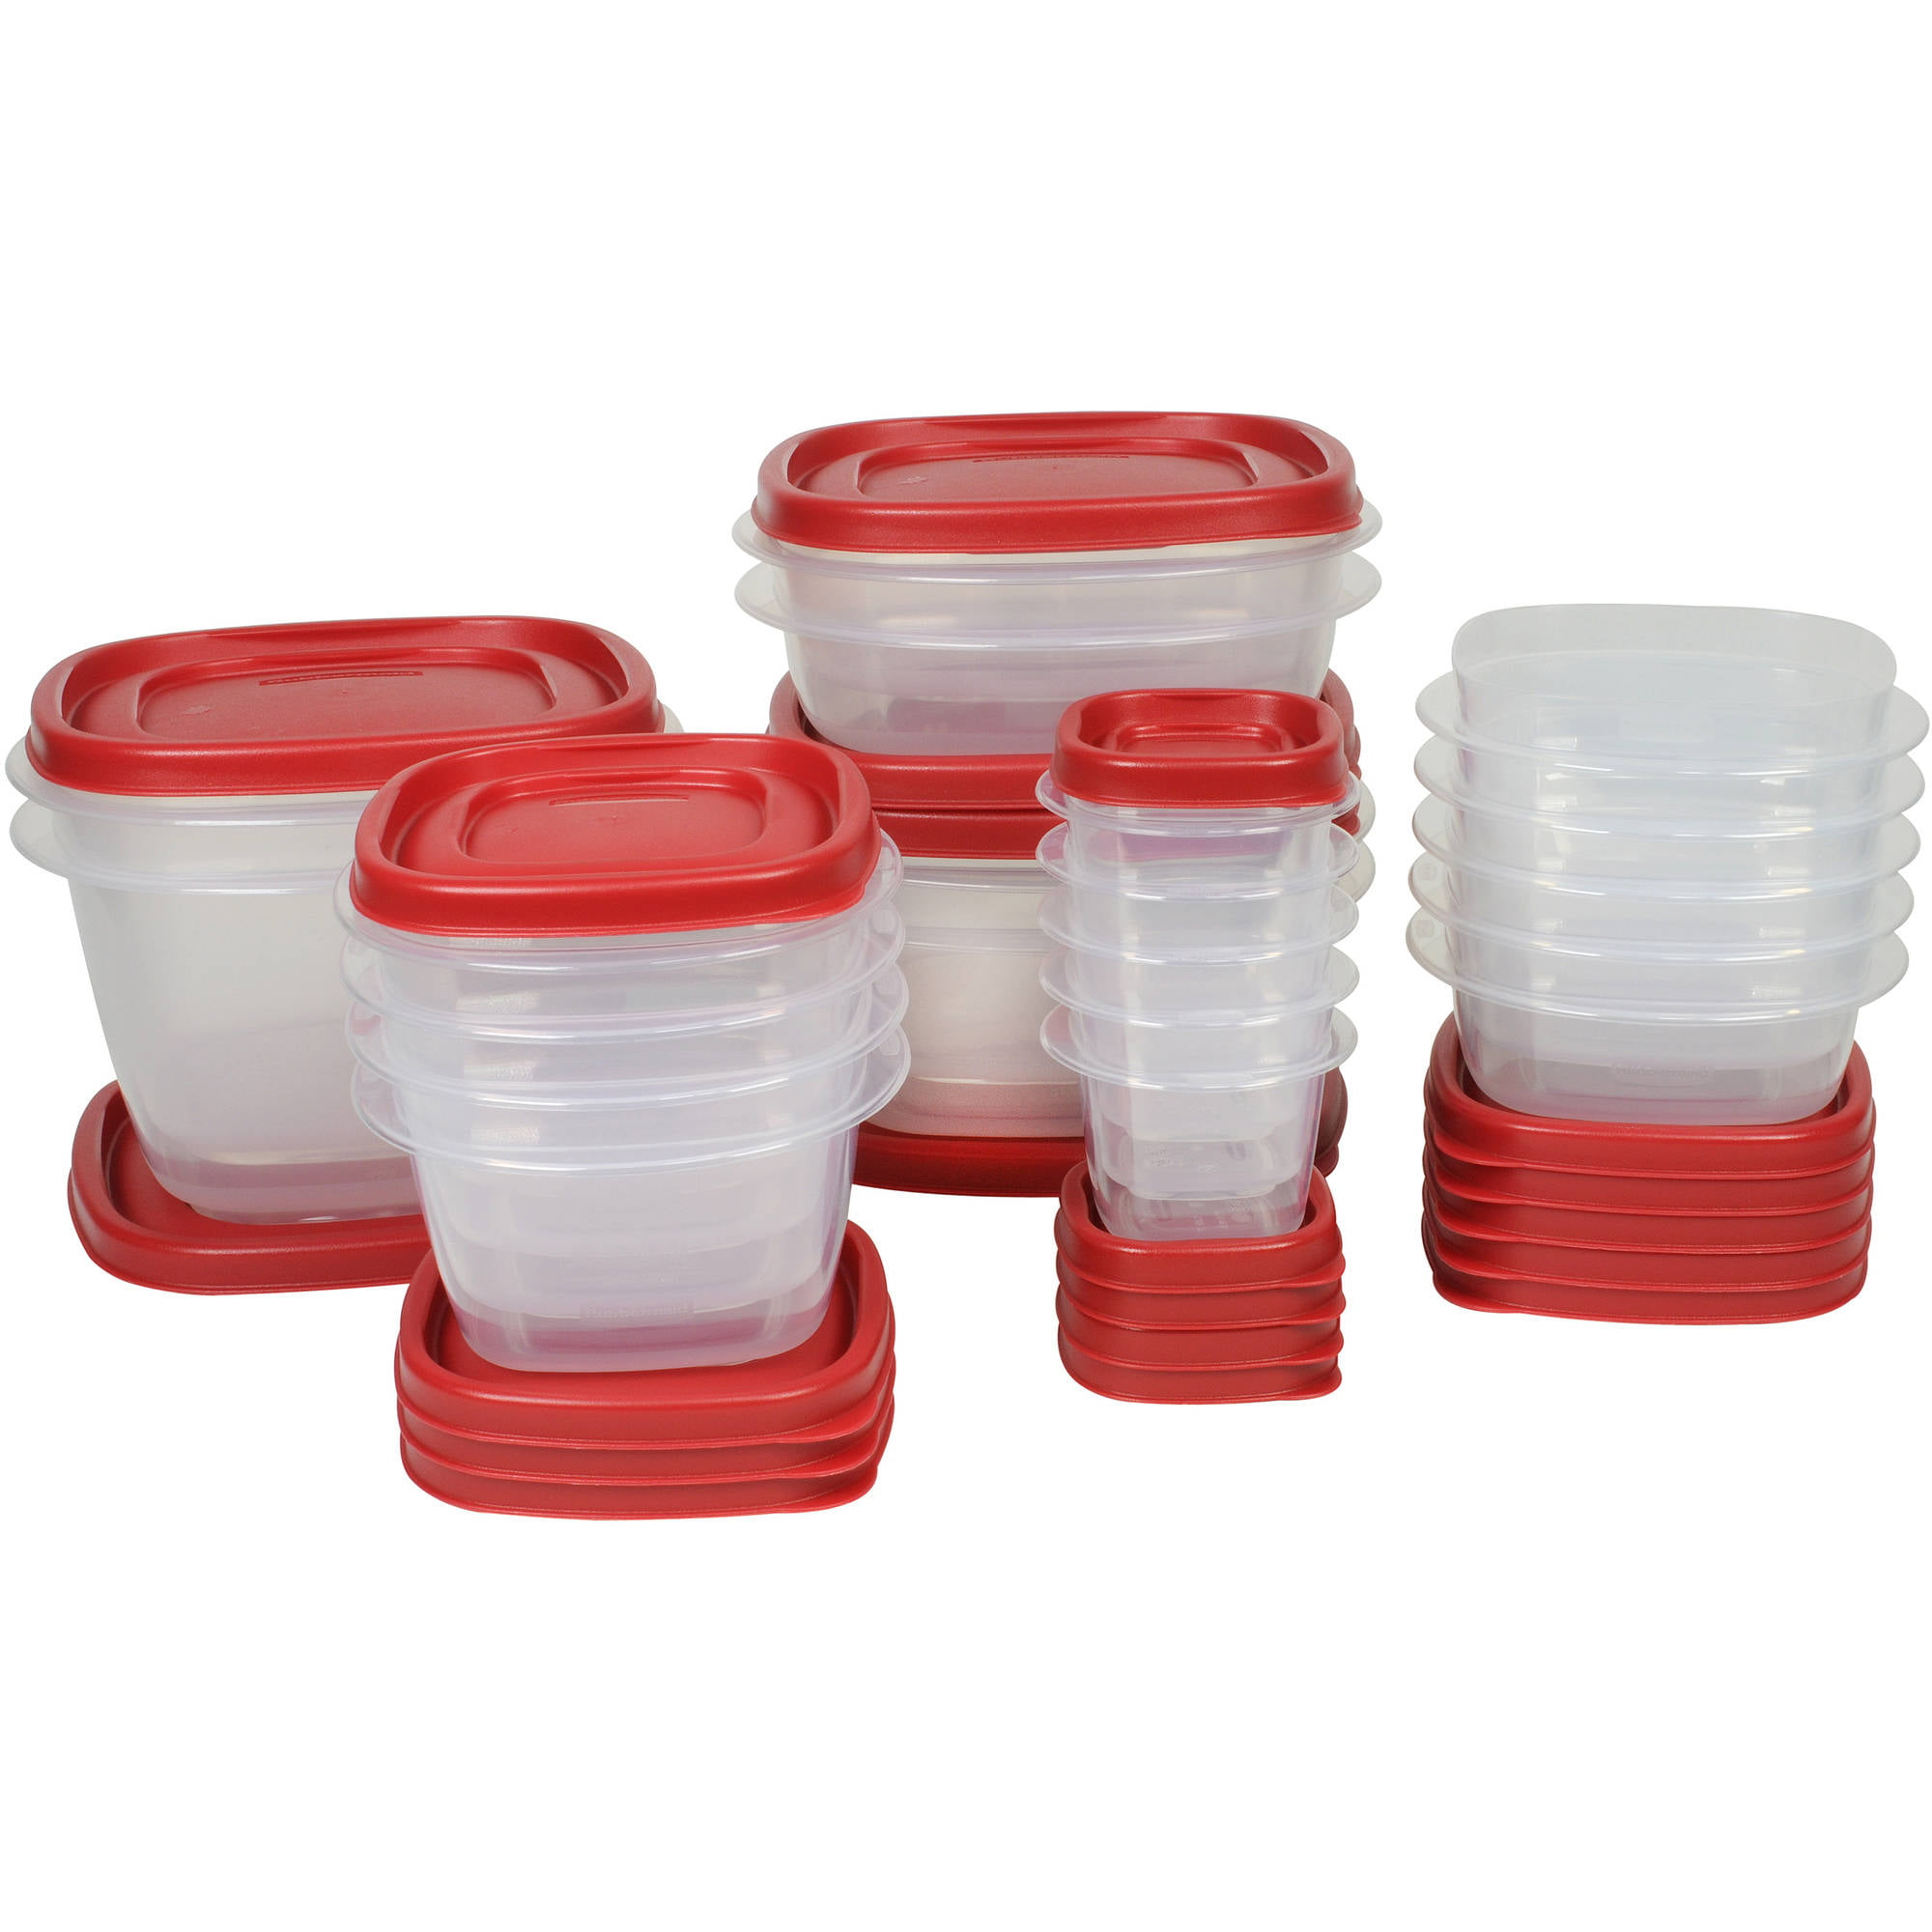 Rubbermaid Food Storage Containers with Easy Find Lids 40 Piece Set